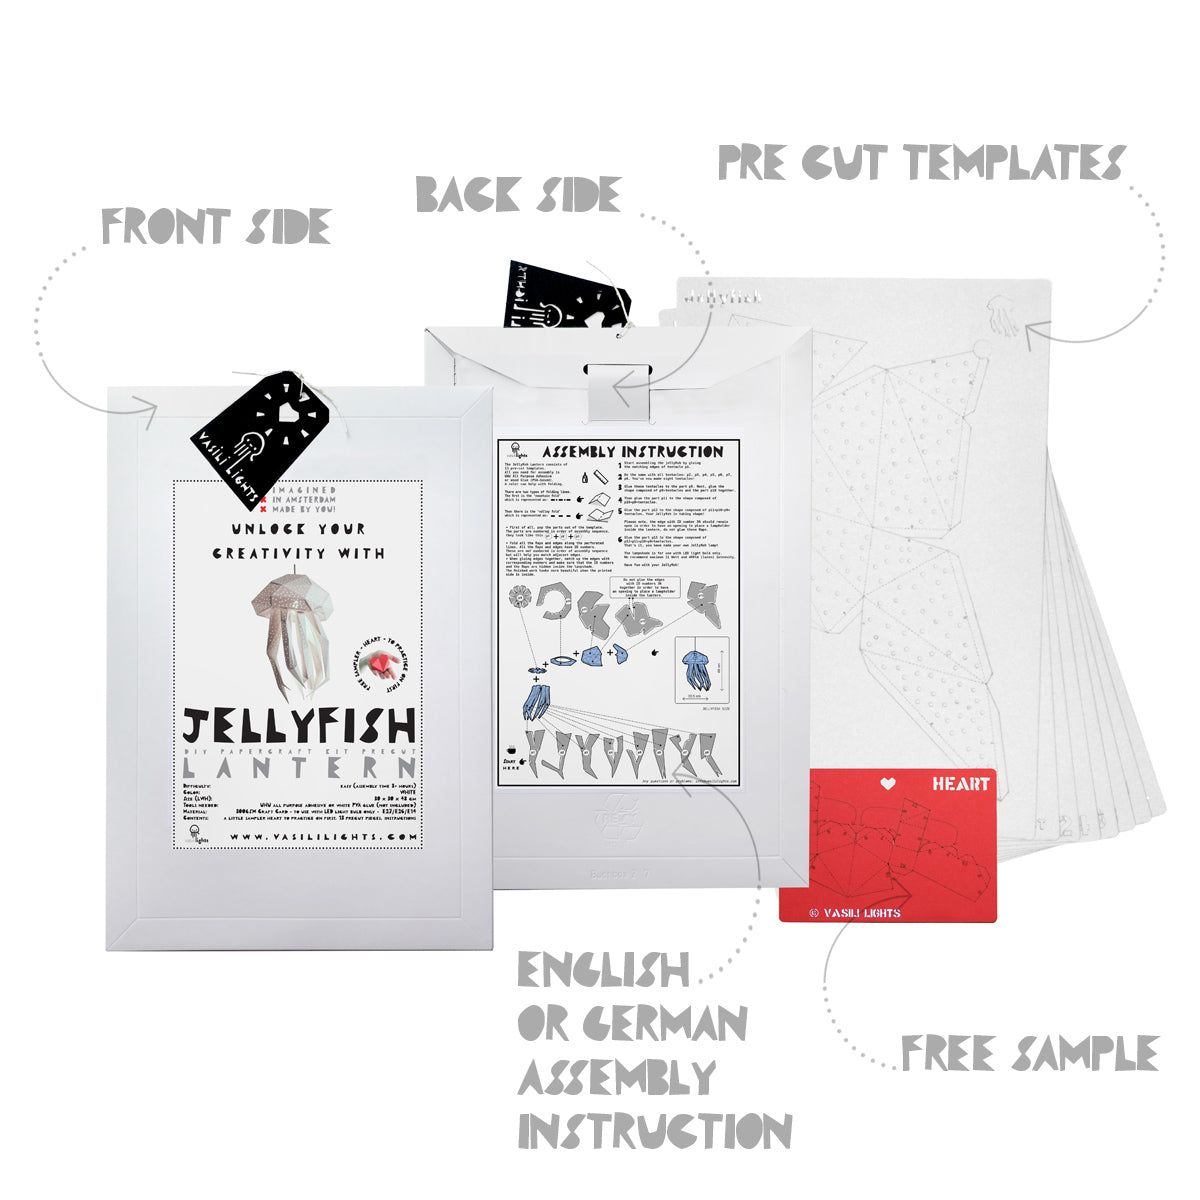 The envelope, pre-cut templates, and assembly instruction for DIY papercraft Jellyfish lantern.